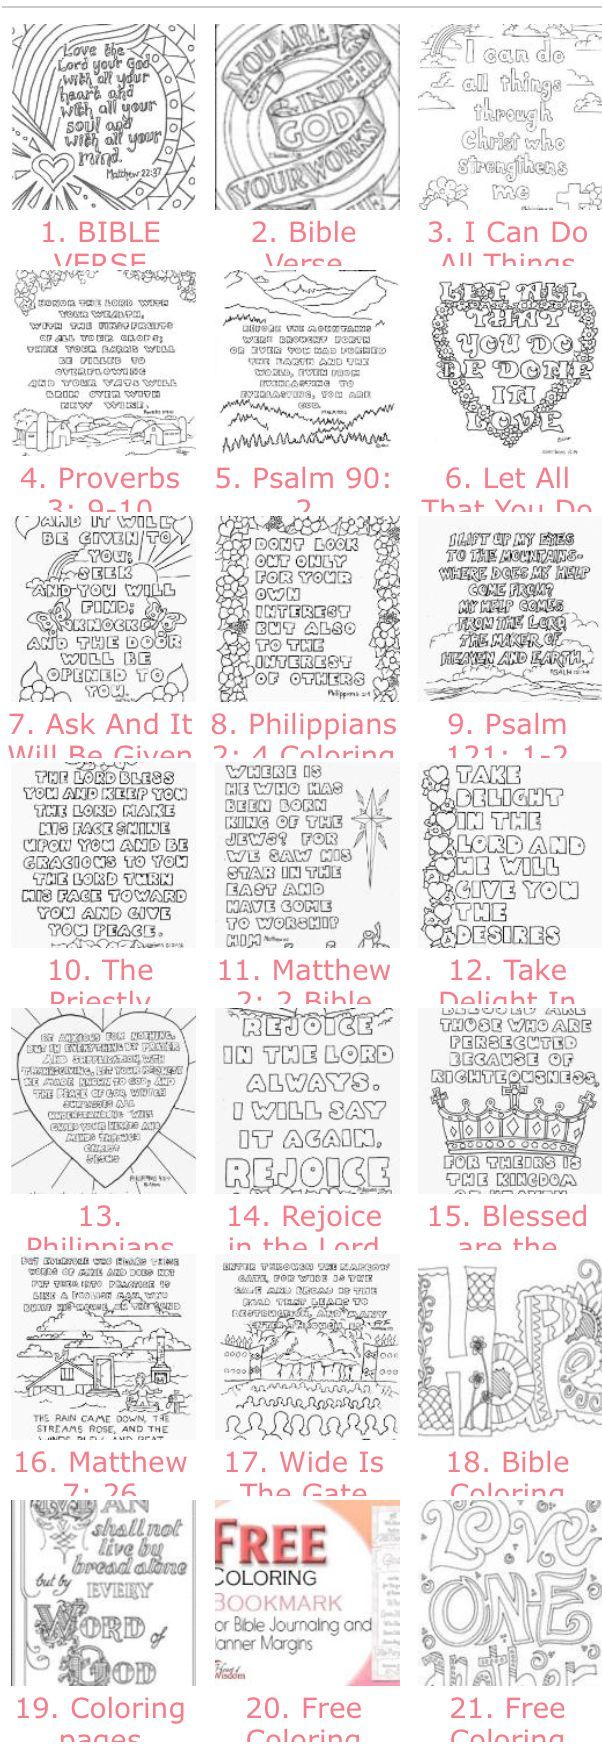 20 Free Adult Bible Coloring Pages (you should see the images on the page but in some browsers it takes a while to load.